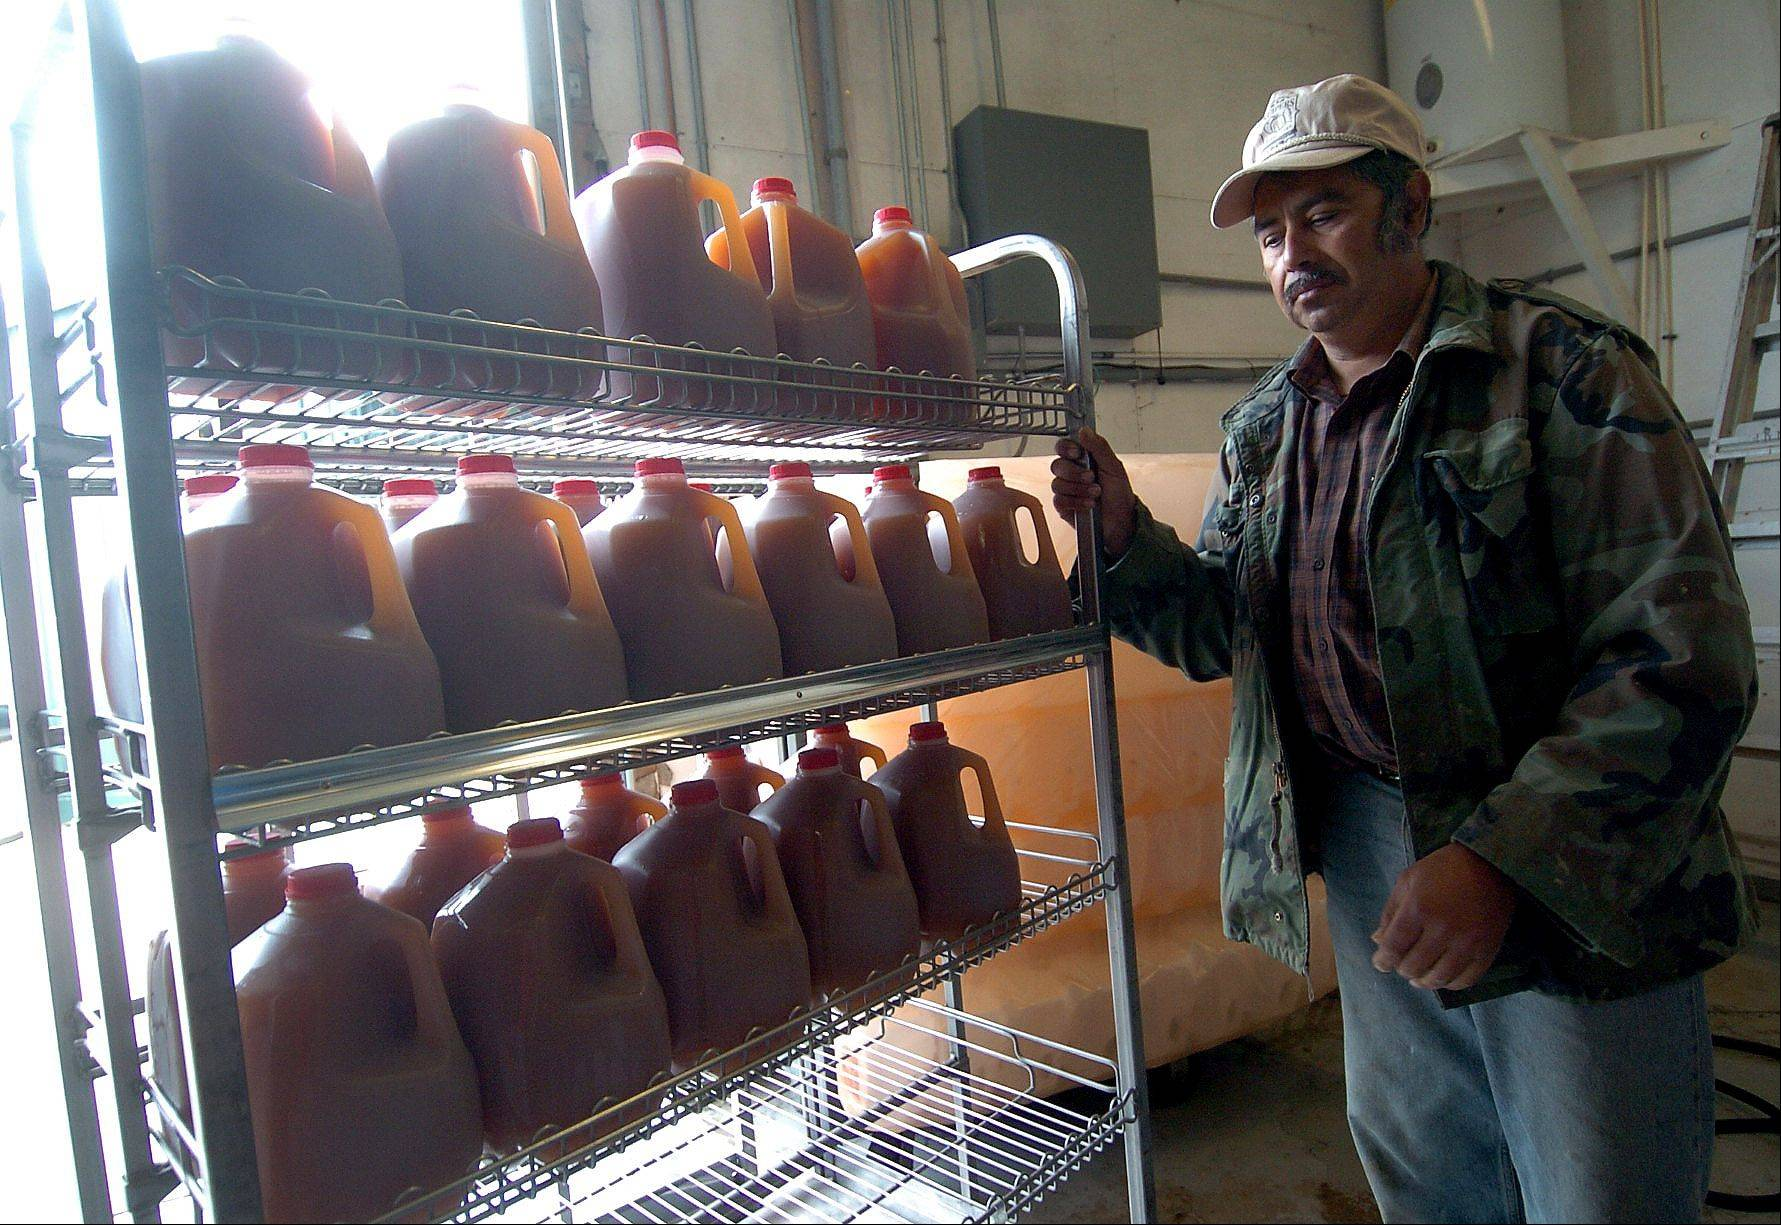 Manuel Rivera fills a rack of freshly bottled apple cider to be sold in the store.